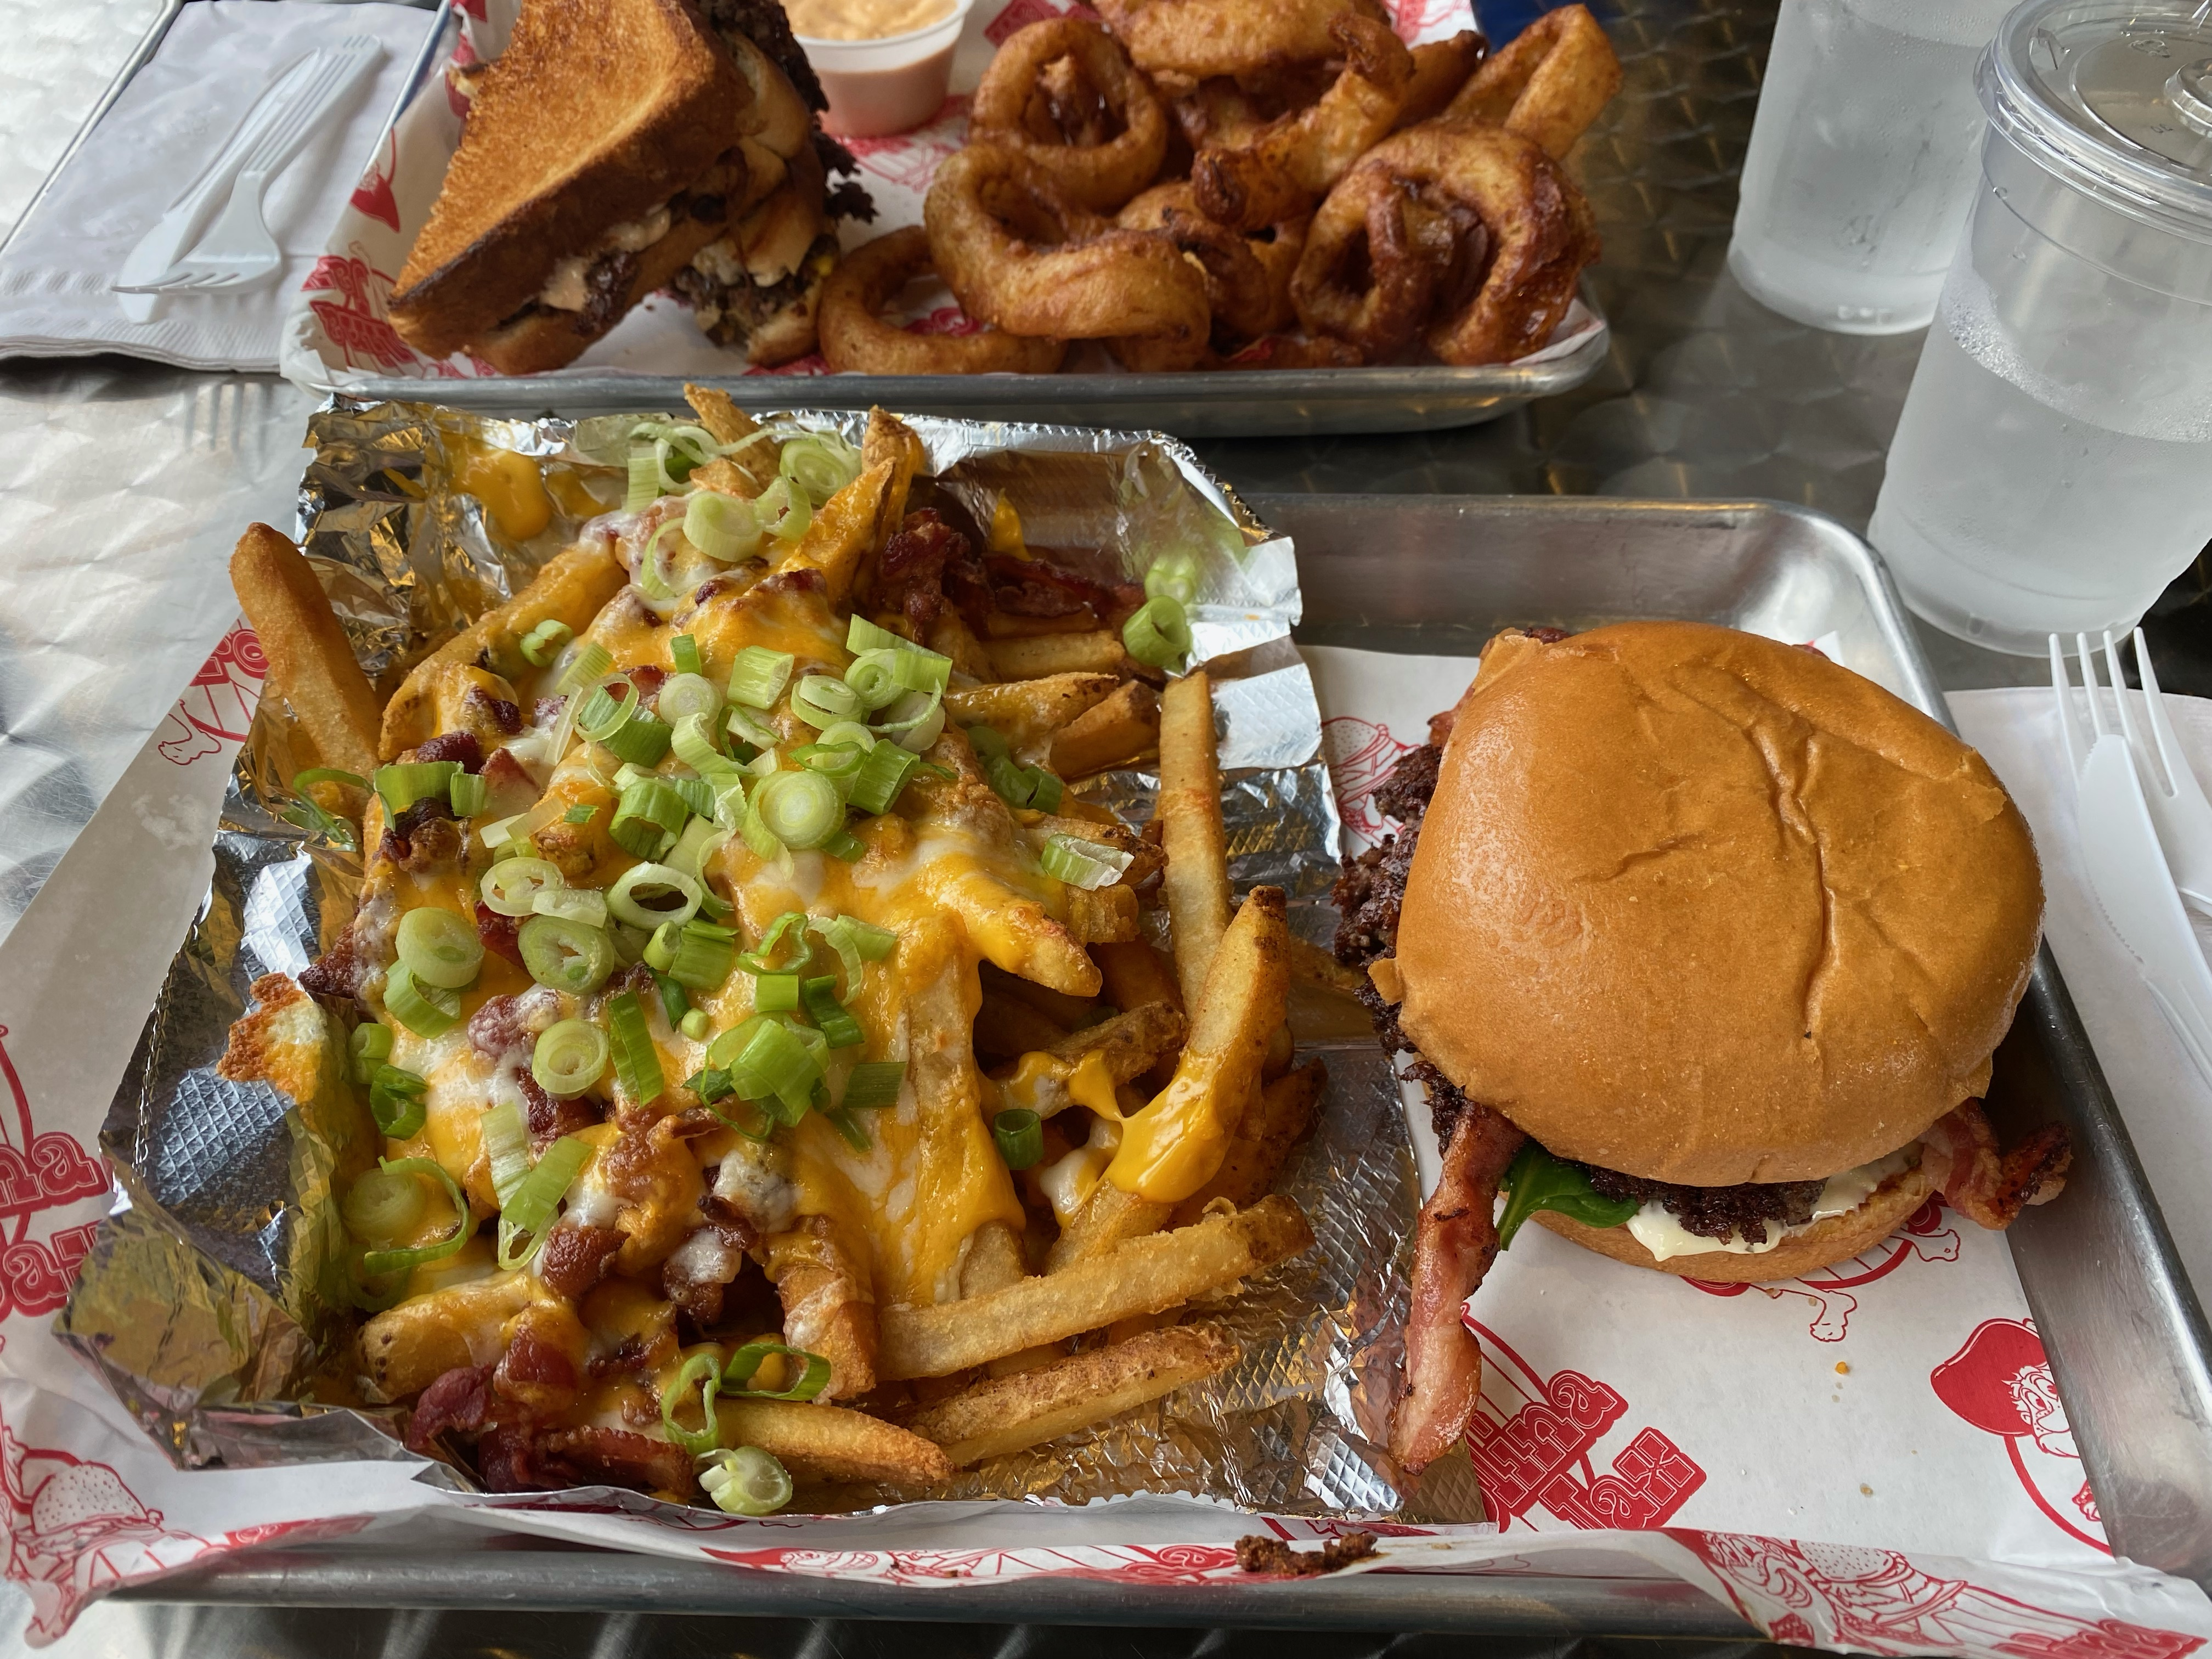 Burger and loaded cheese fries on a tray